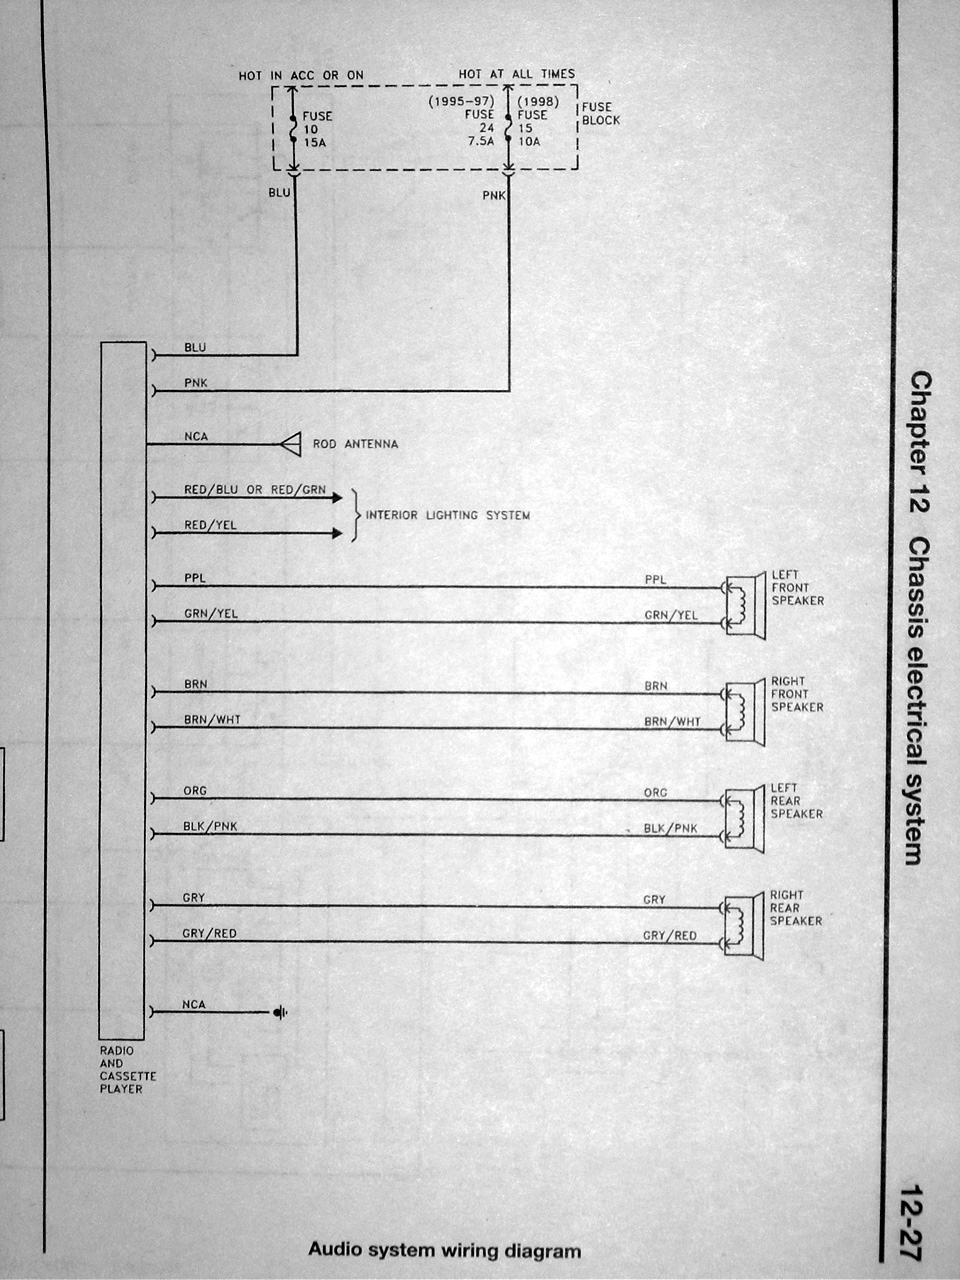 DSC01849 wiring diagram thread *useful info* nissan forum 2014 nissan frontier stereo wiring diagram at suagrazia.org